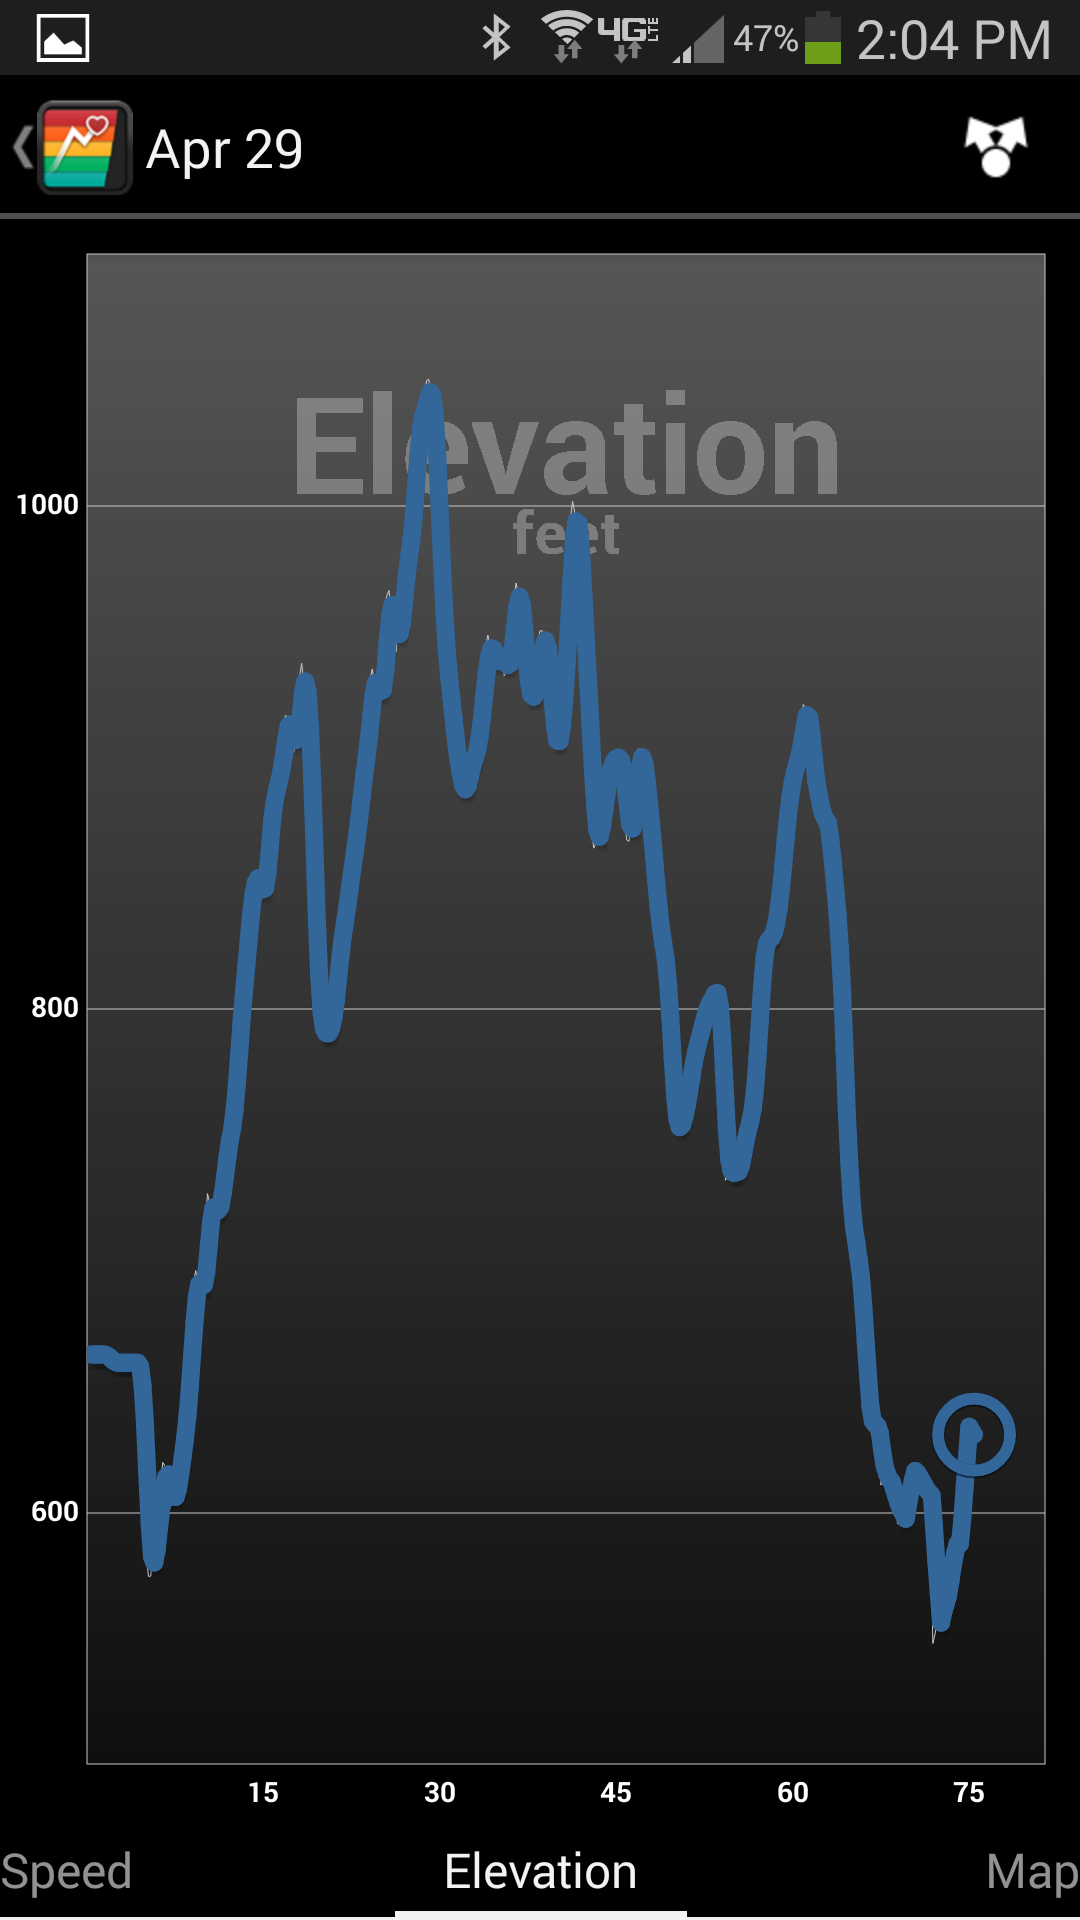 Elevation Change over the Mountain bike ride